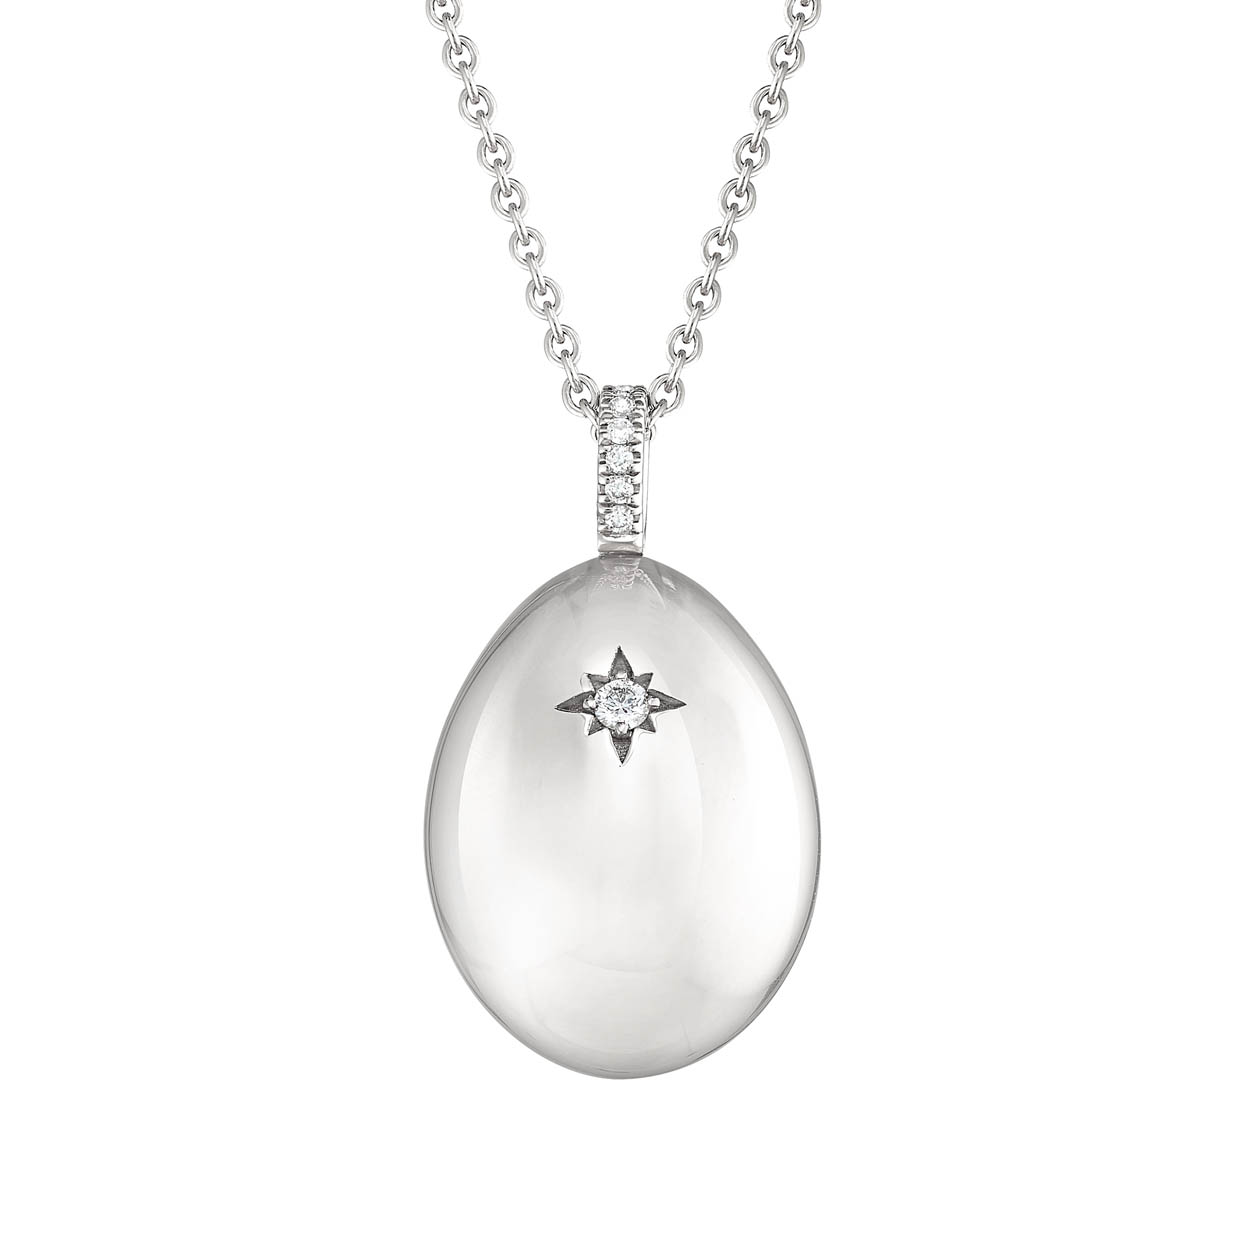 COLLECTION IMPERIALE PENDENTIF OEUF FABERGÉ  I LOVE YOU EN OR BLANC